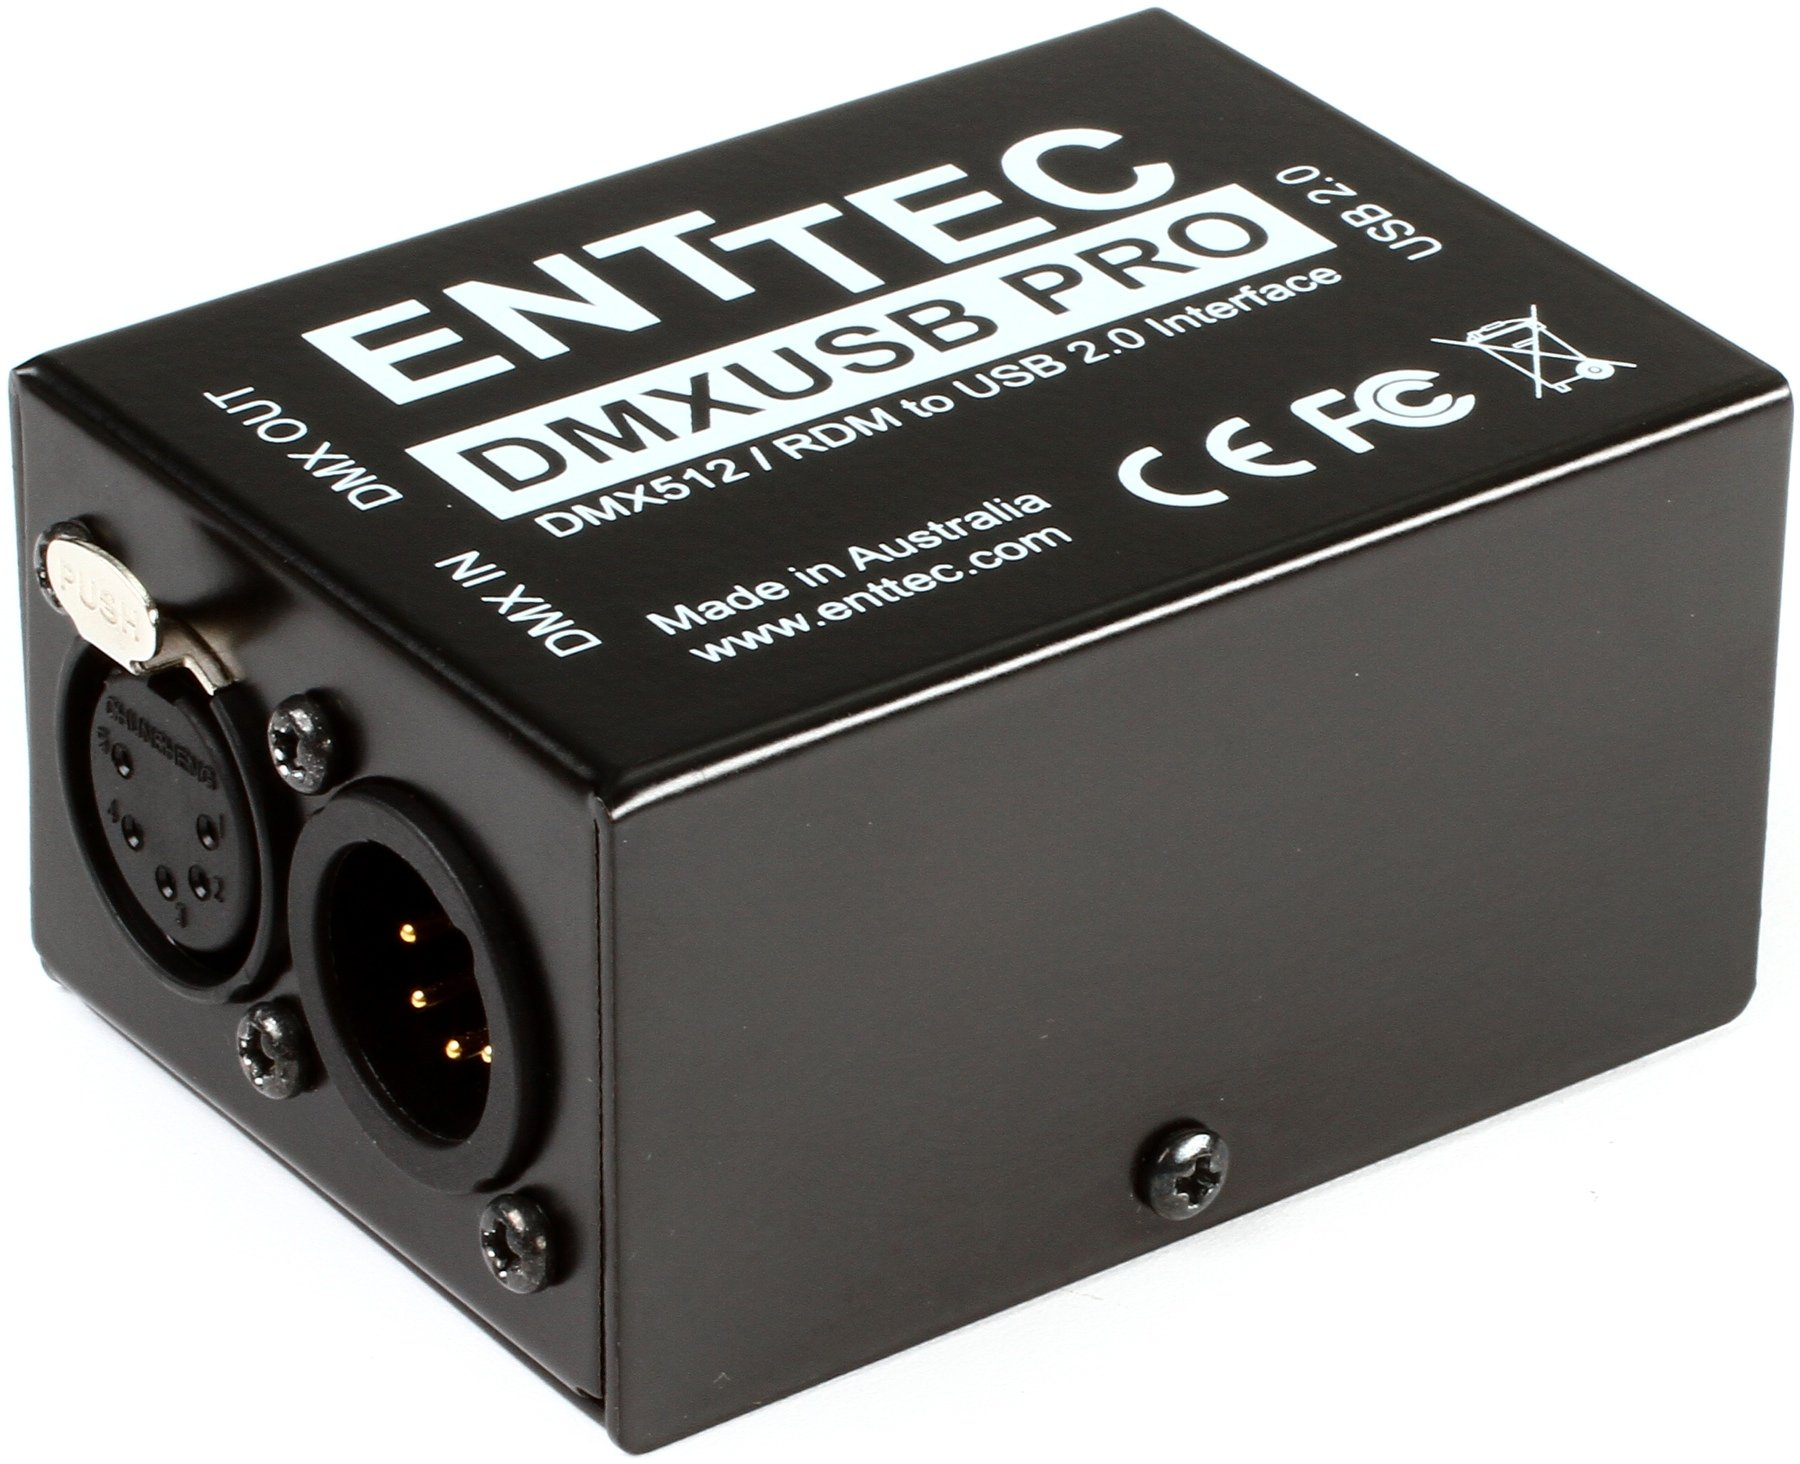 Enttec DMX USB Pro 70304 RDM Lighting Controller Interface by ENTTEC (Image #1)